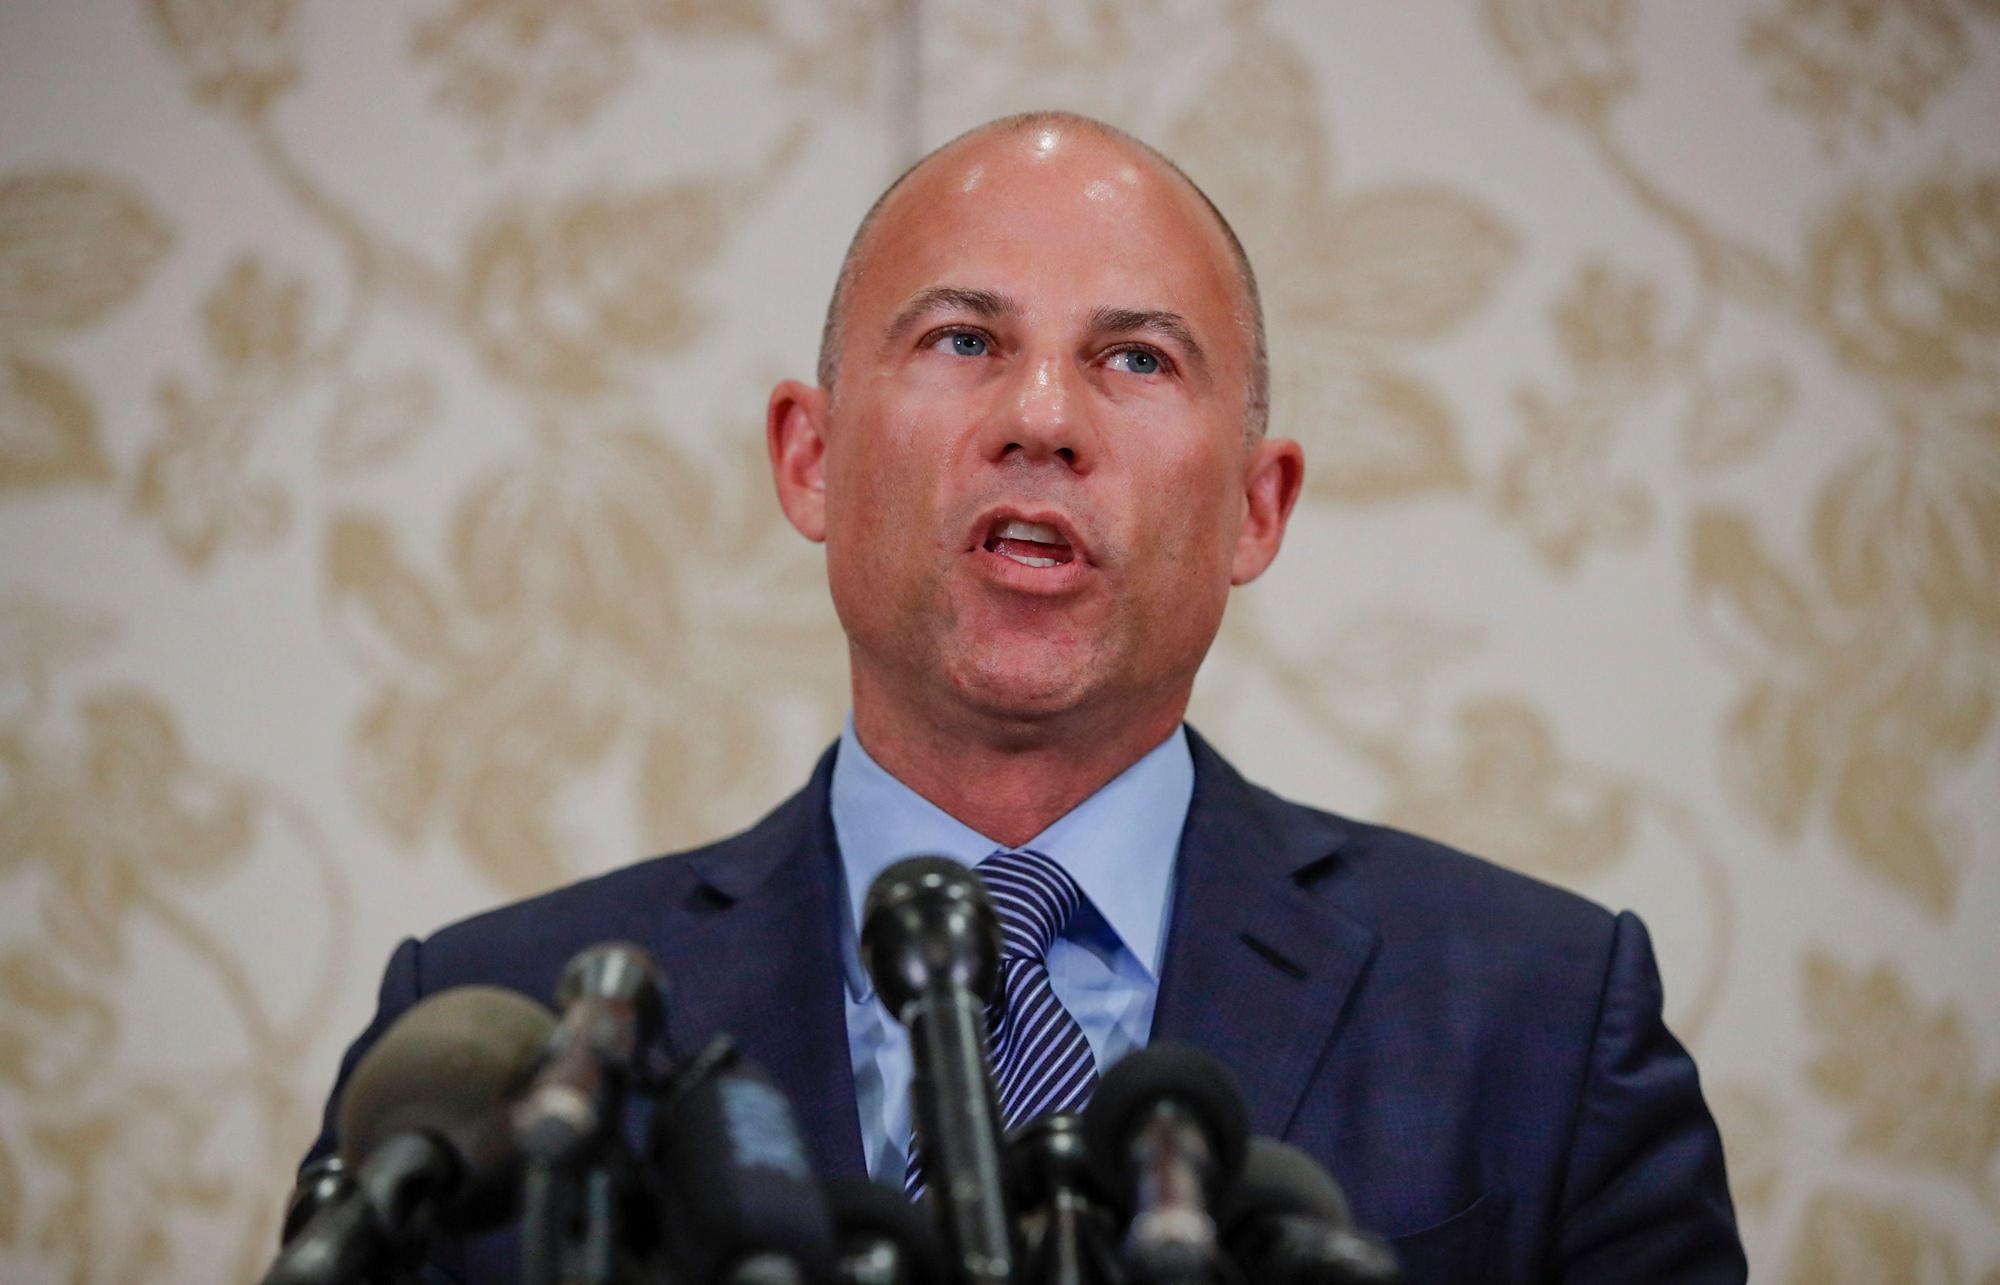 Michael Avenatti: Stormy Daniels' former lawyer and Trump foe jailed for trying to extort millions from Nike